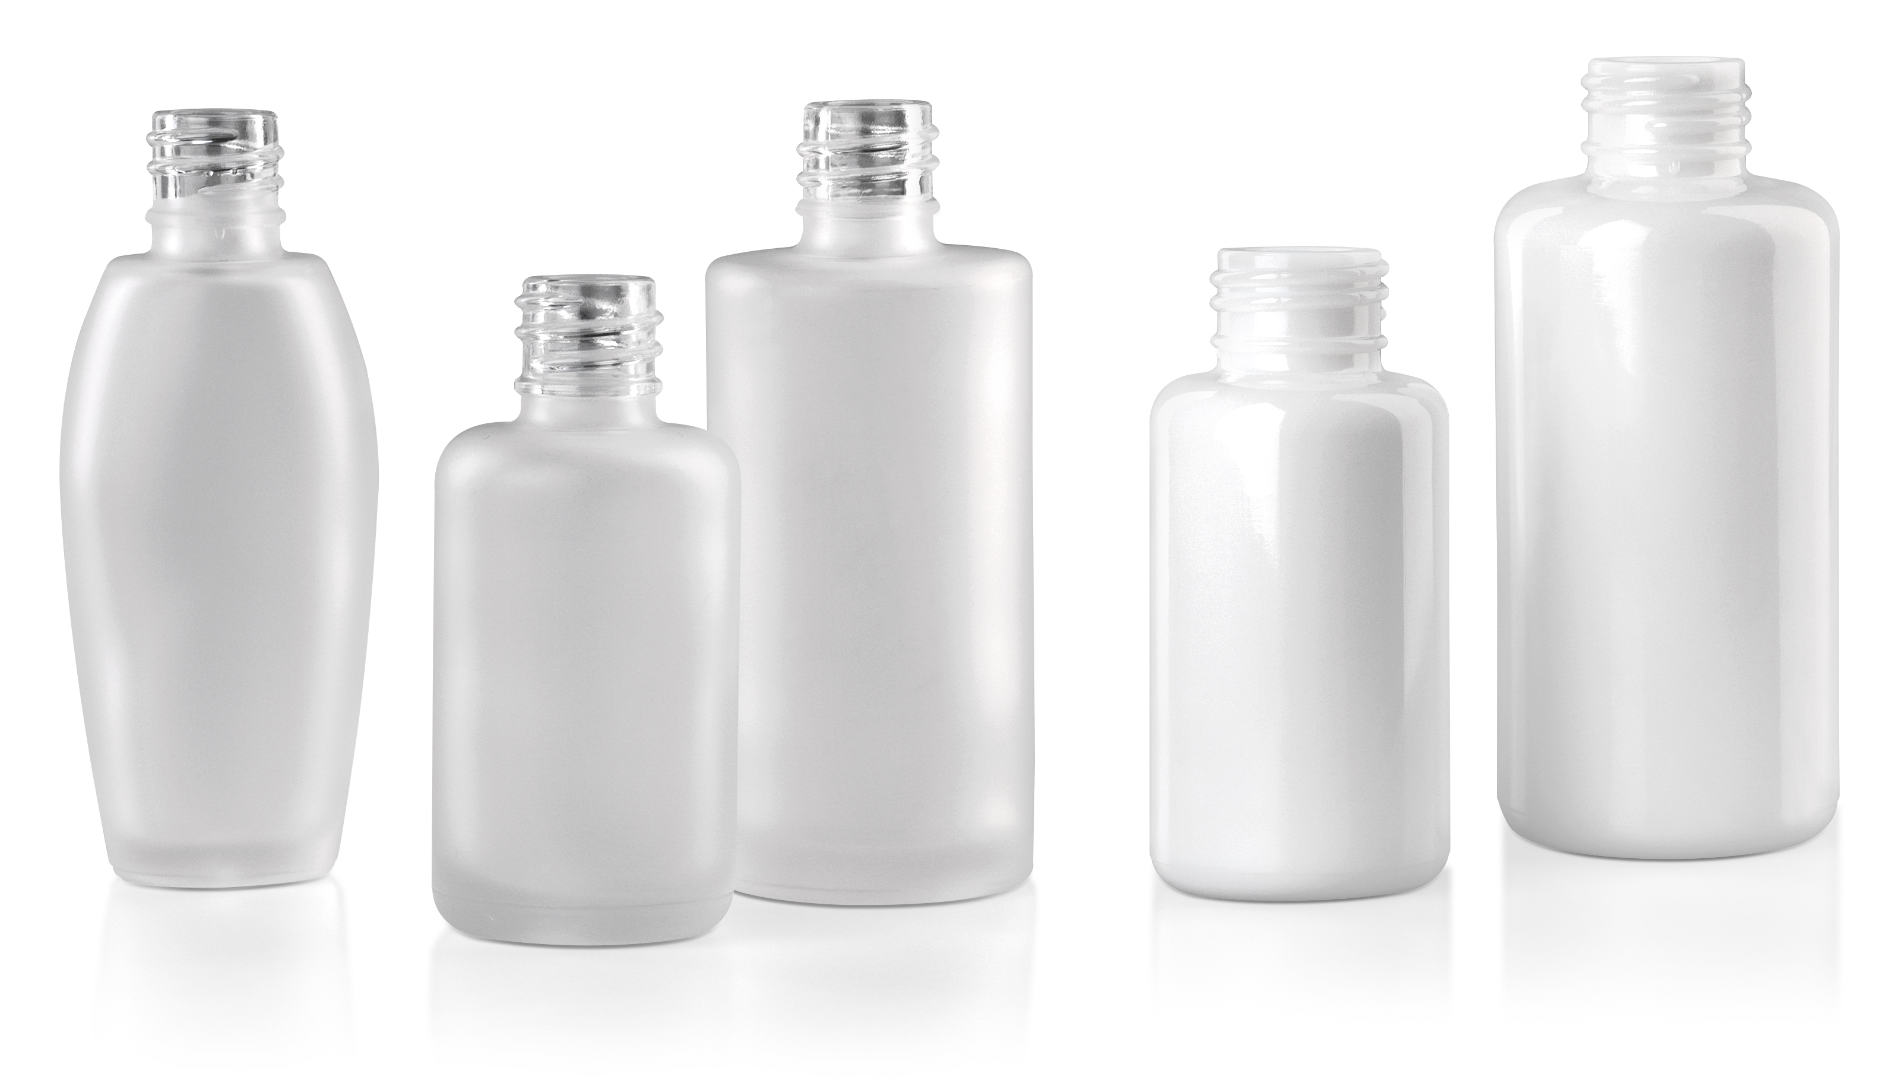 Blow-moulded bottles for cosmetics: frosted and opal